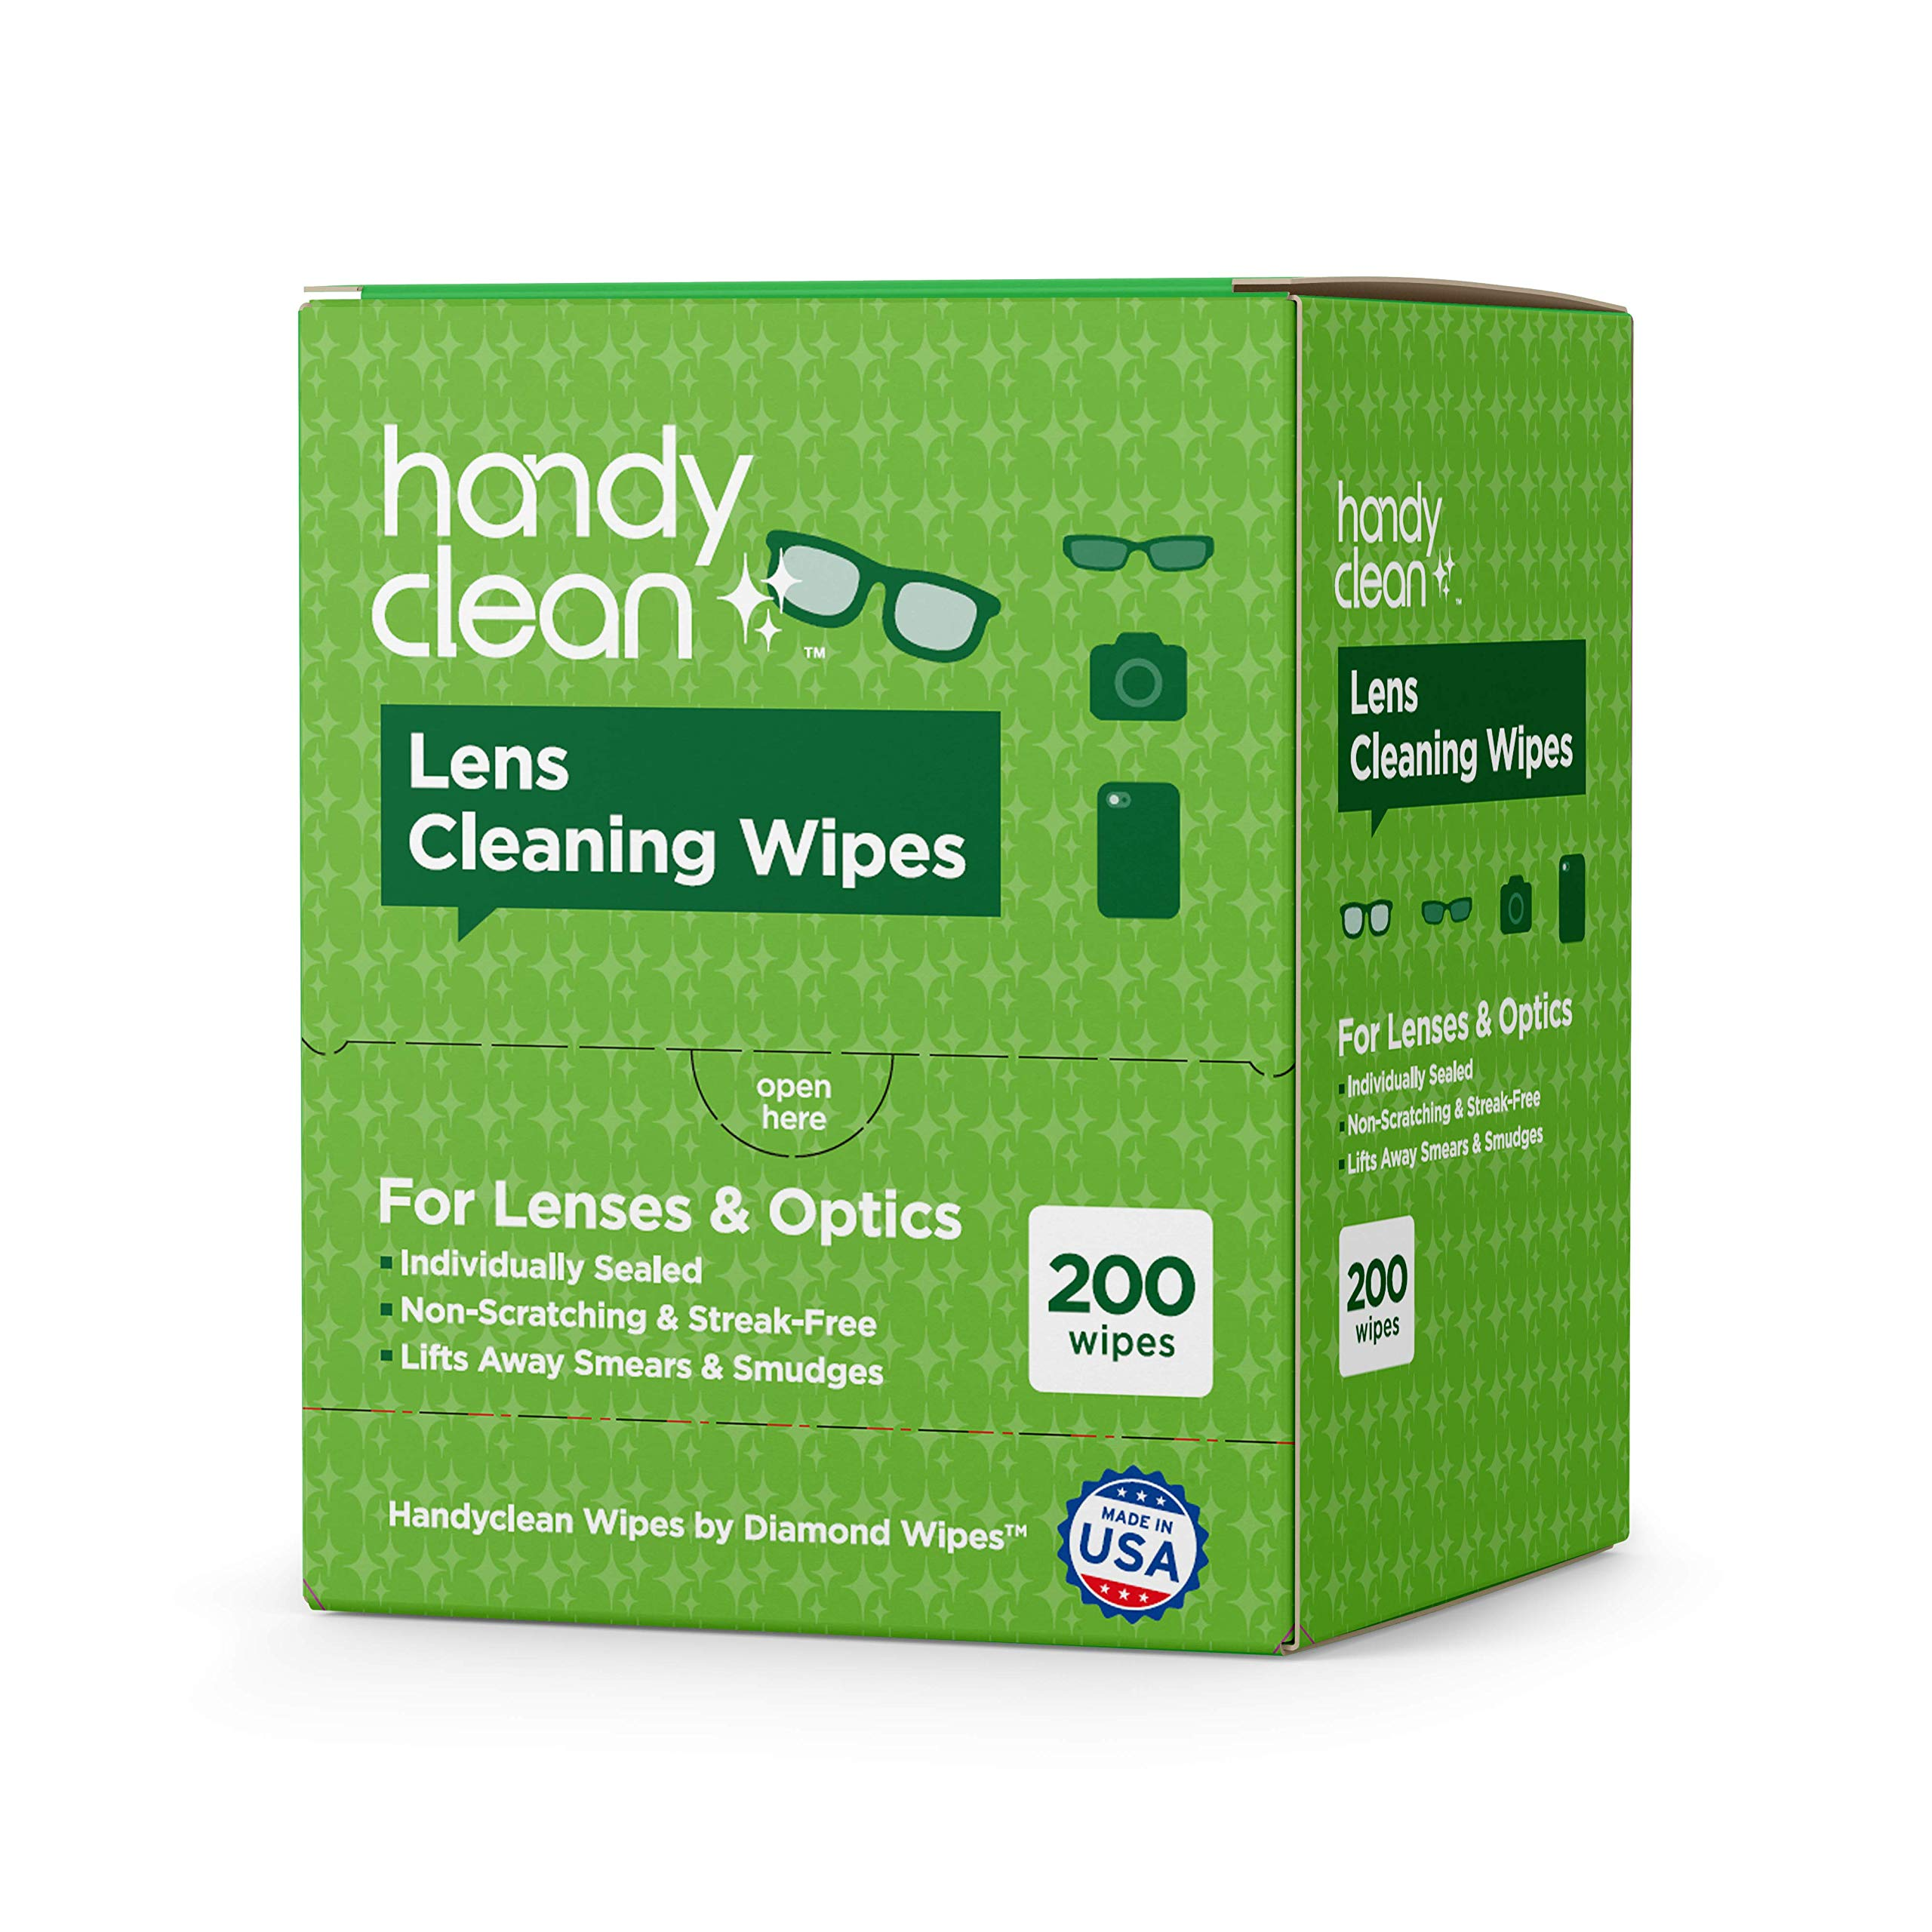 Pre-moistened Lens and Glass Cleaning Wipes: for Glasses, Camera, Cell Phone, Smartphone, and Tablet – Safe for AR Lenses, Quick Drying, Streak Free, Disposable - Individually Wrapped - 200 Pack